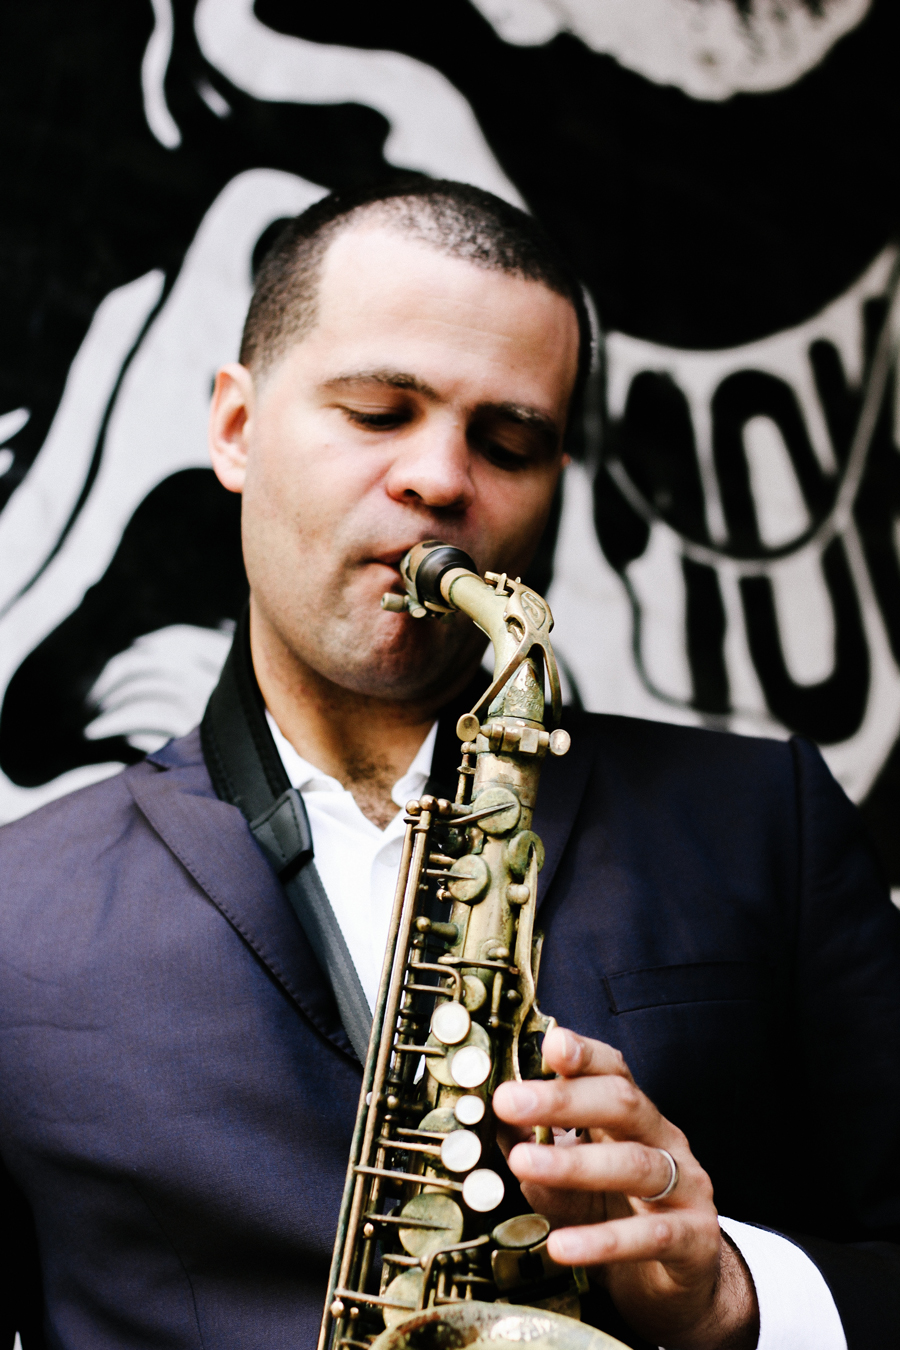 Since returning to Chicago in November, Ward has founded a new quintet, which plays every Tuesday in June at the Whistler.